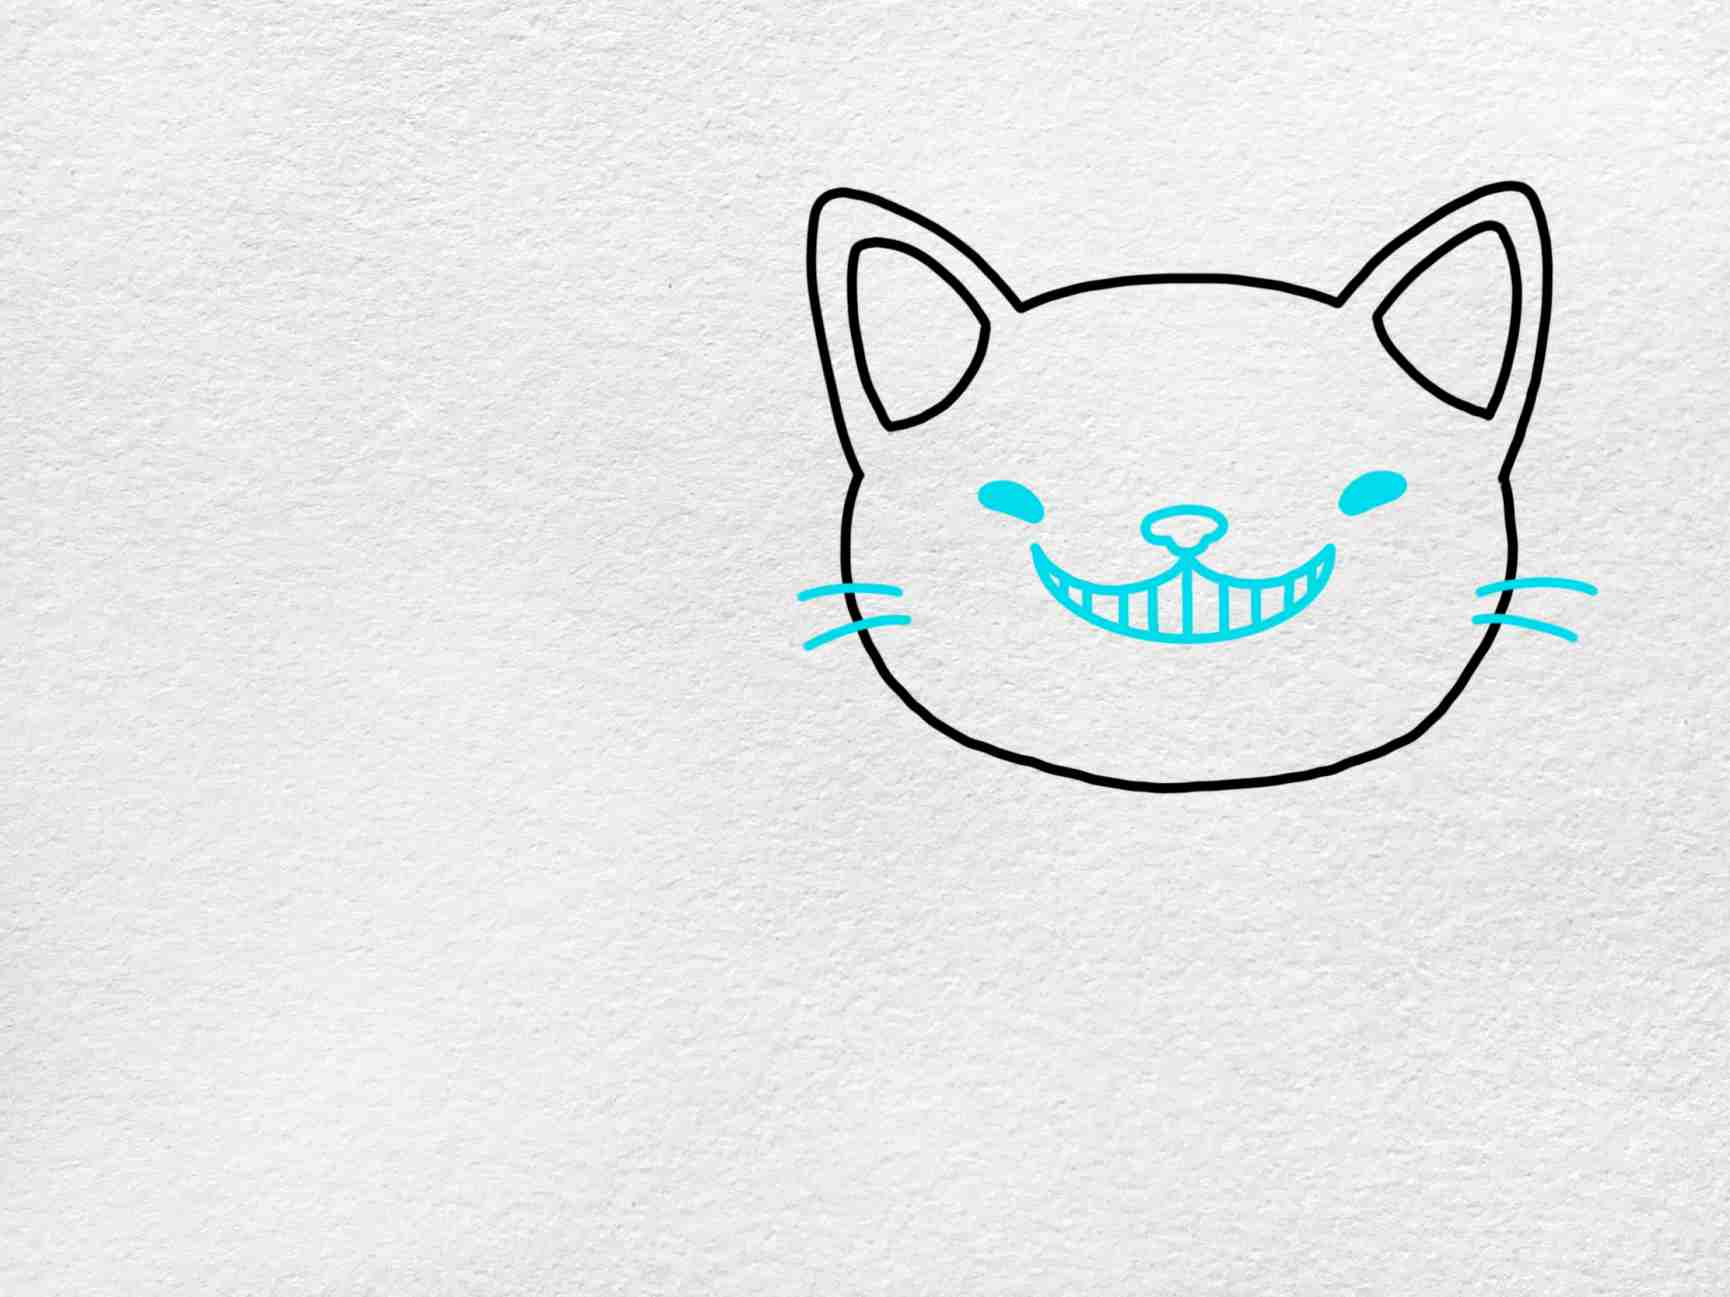 Cheshire Cat Drawing: Step 3